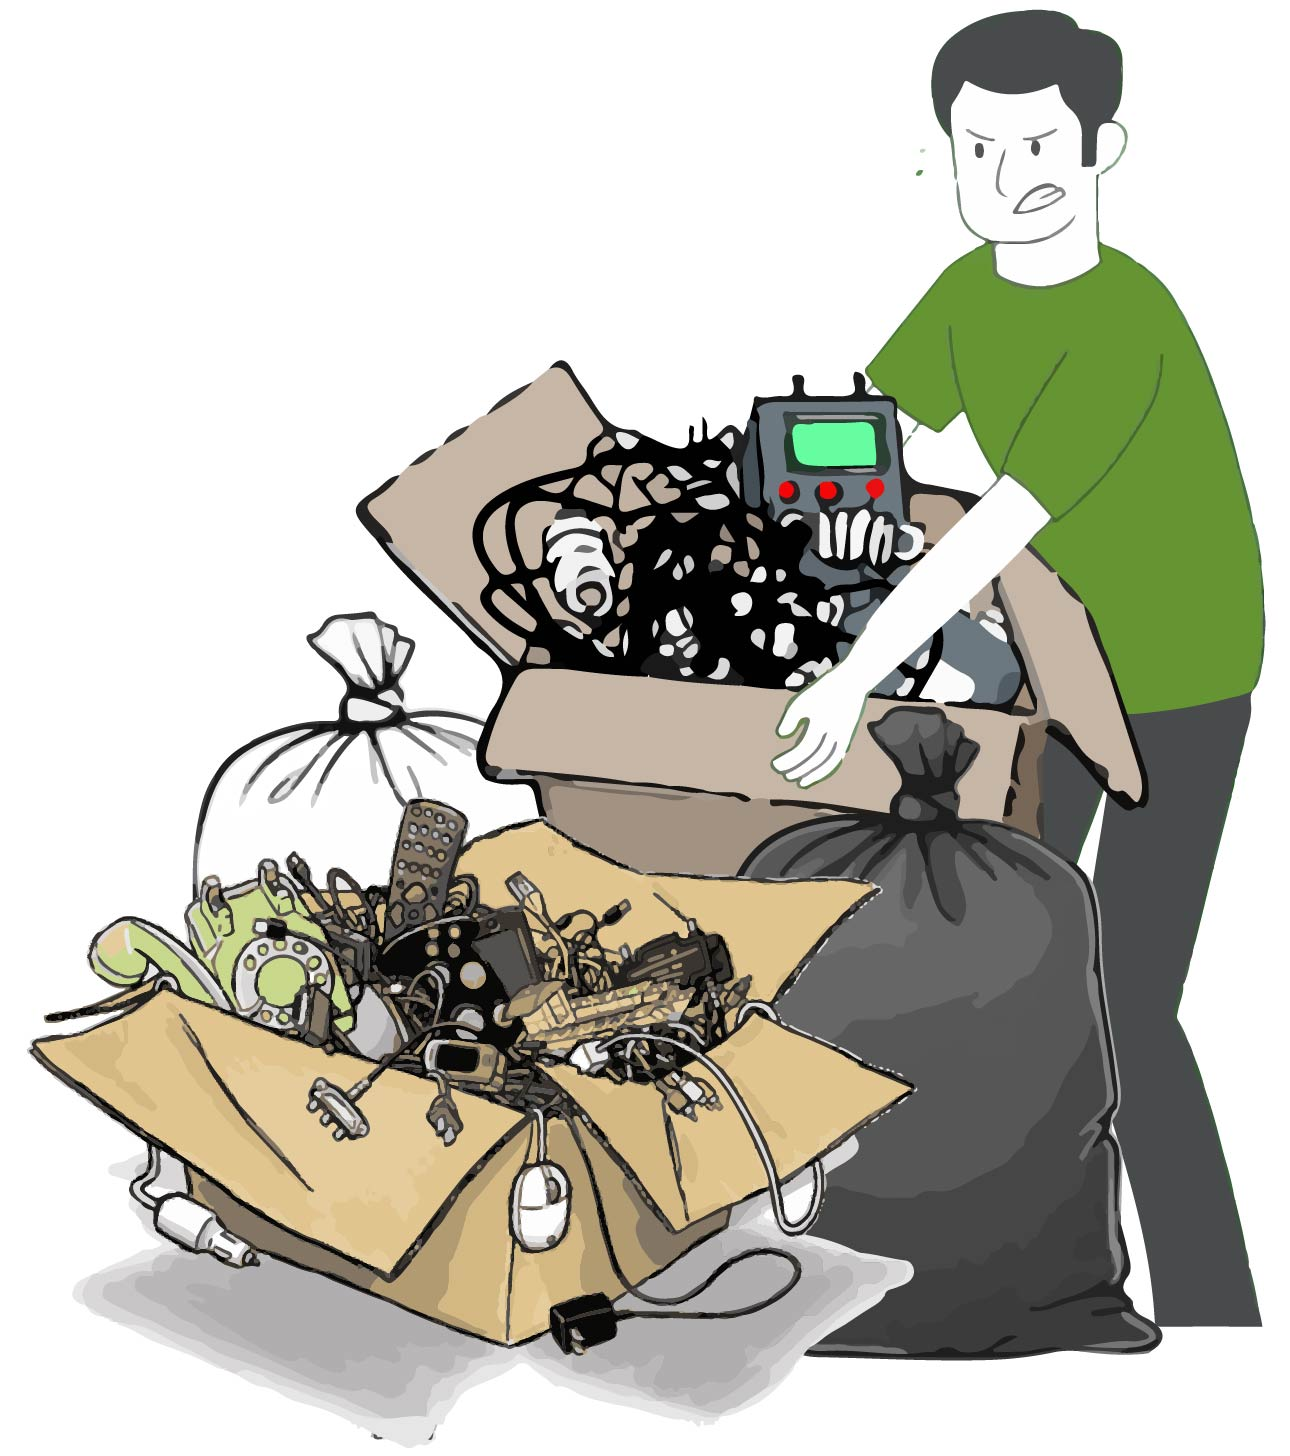 Affordable Junk Removal Services in Clinton, CT